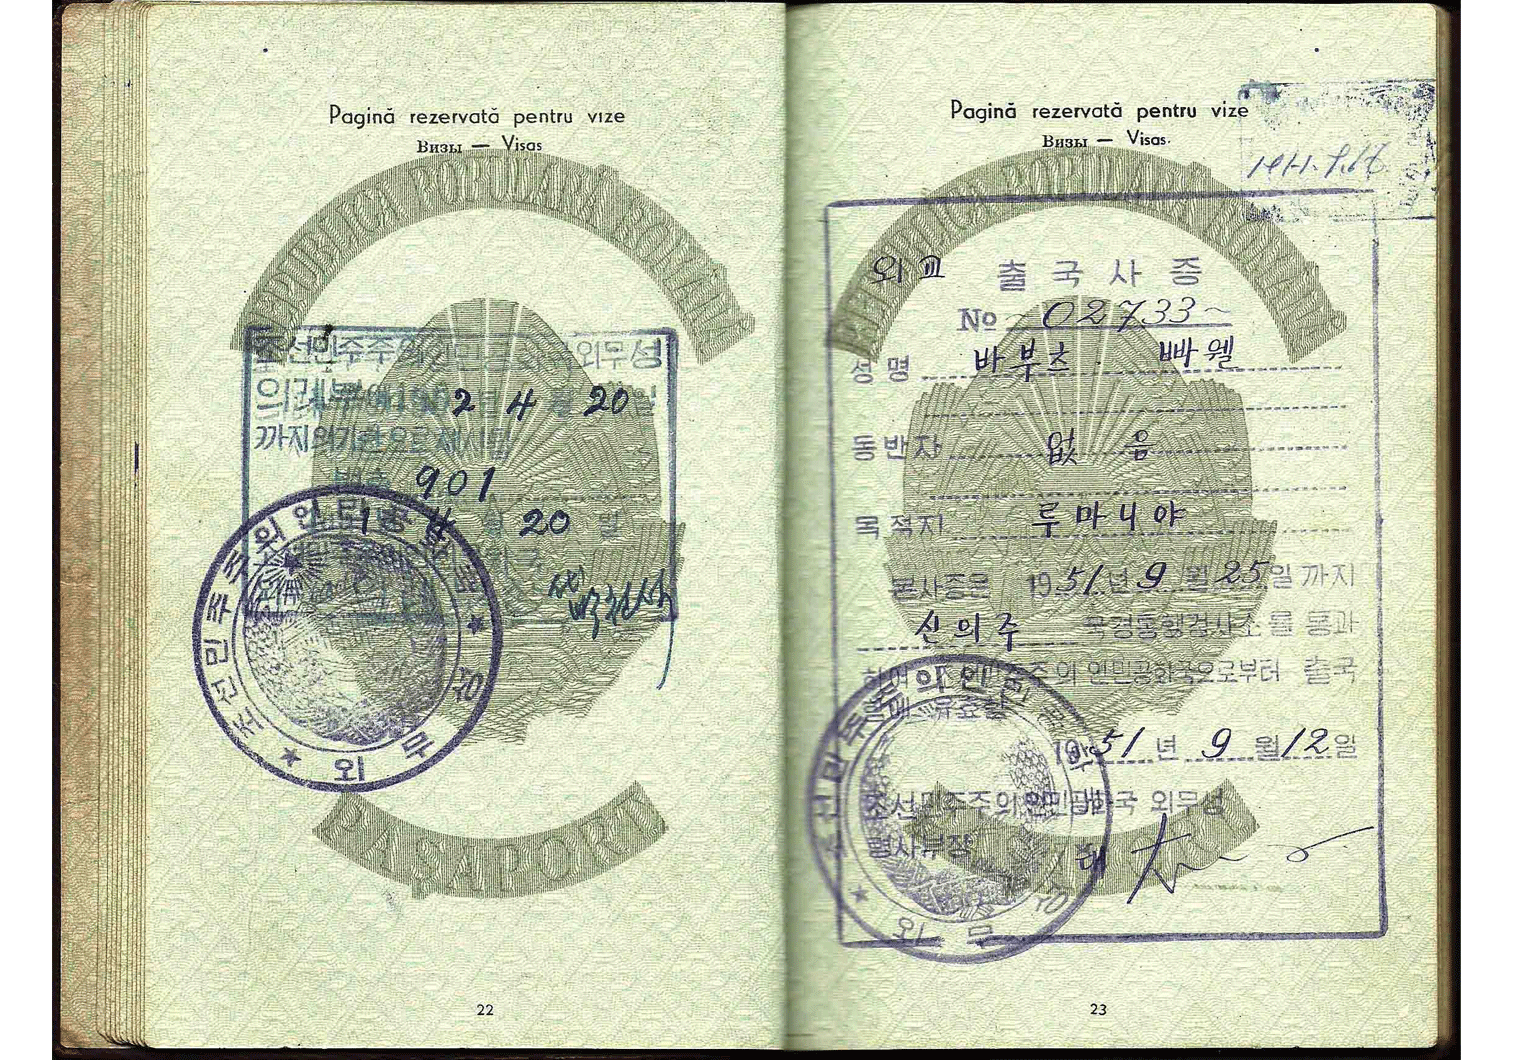 1951 North Korean diplomatic visa inside a passport